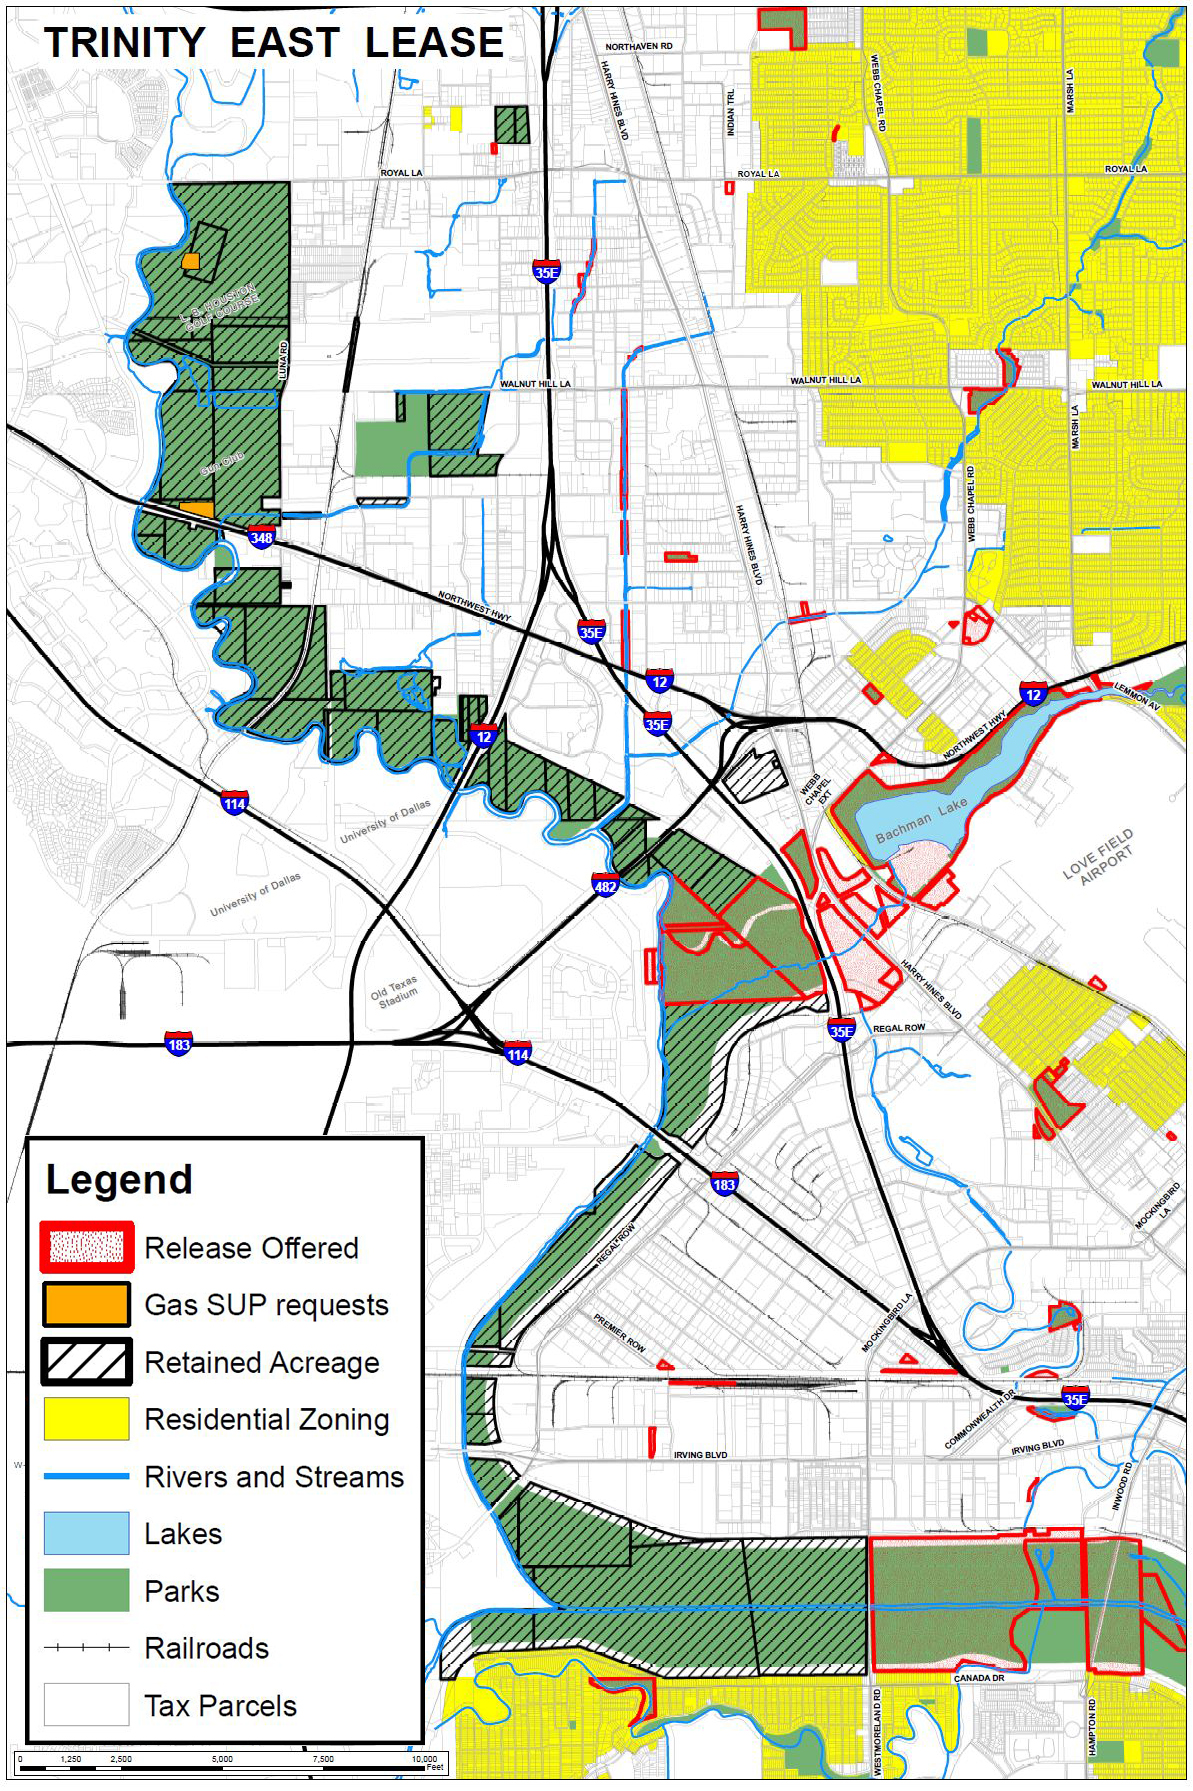 Dallas City Hall Map Bombs:Trinity East to Drill the Trinity ... on